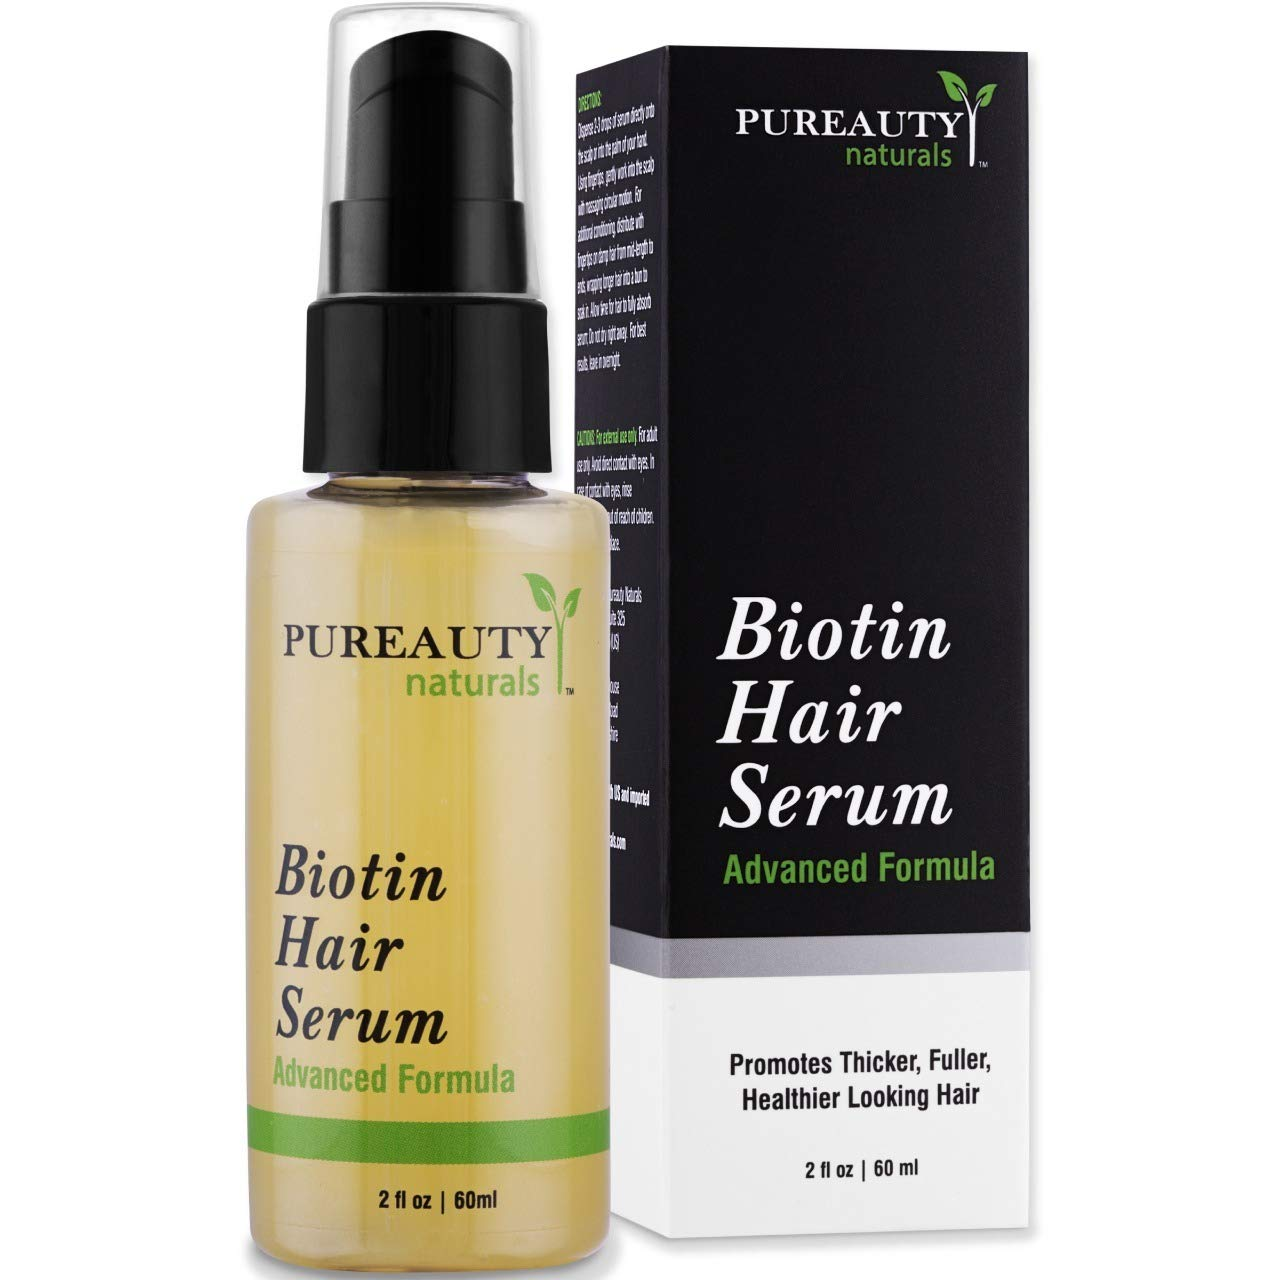 Amazon Com Biotin Hair Growth Serum Advanced Topical Formula To Help Grow Healthy Strong Hair Suitable For Men And Women Of All Hair Types Hair Loss Support By Pureauty Naturals Beauty